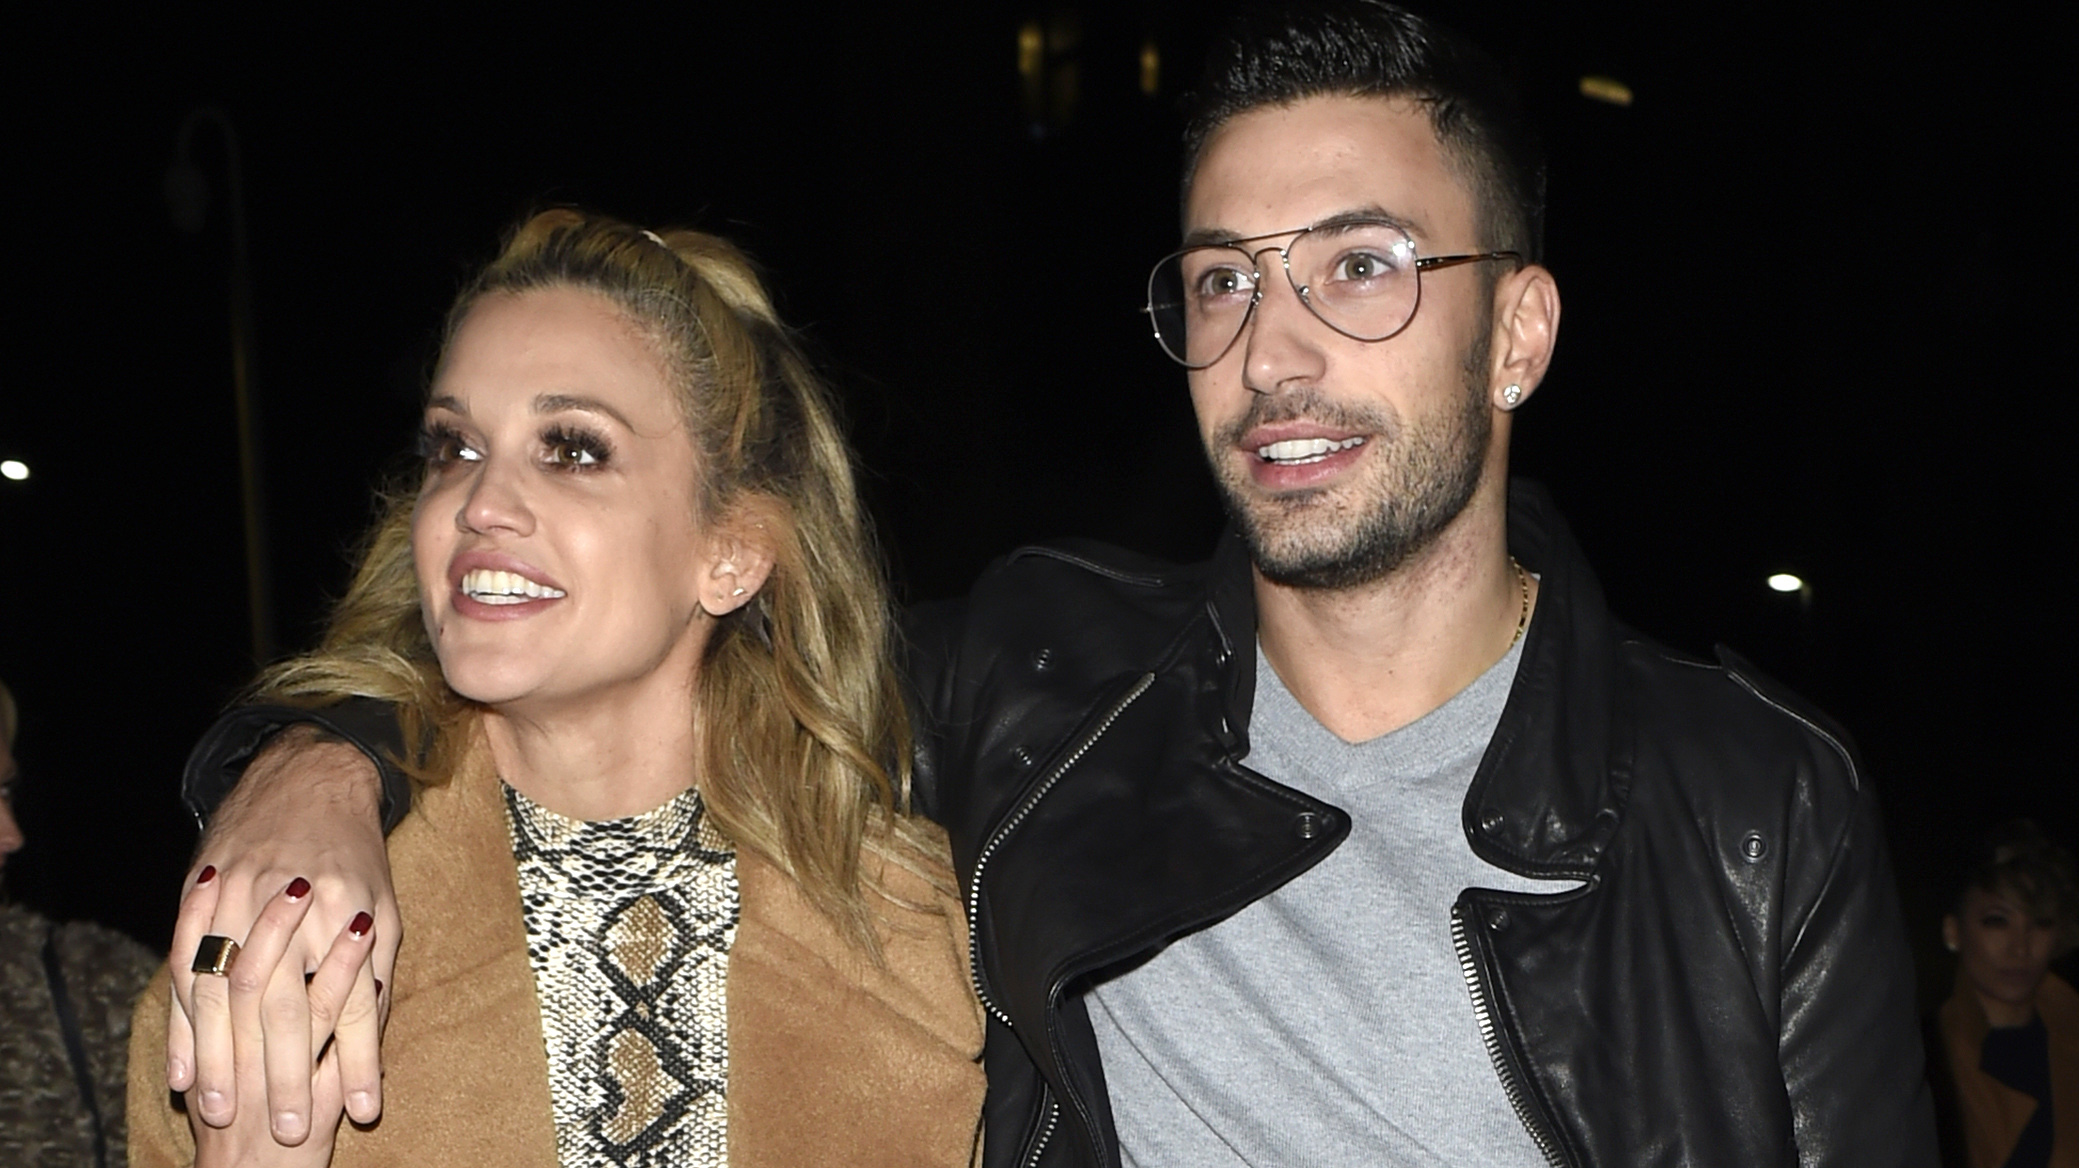 Strictly's Giovanni Pernice announces shock split from Ashley Roberts